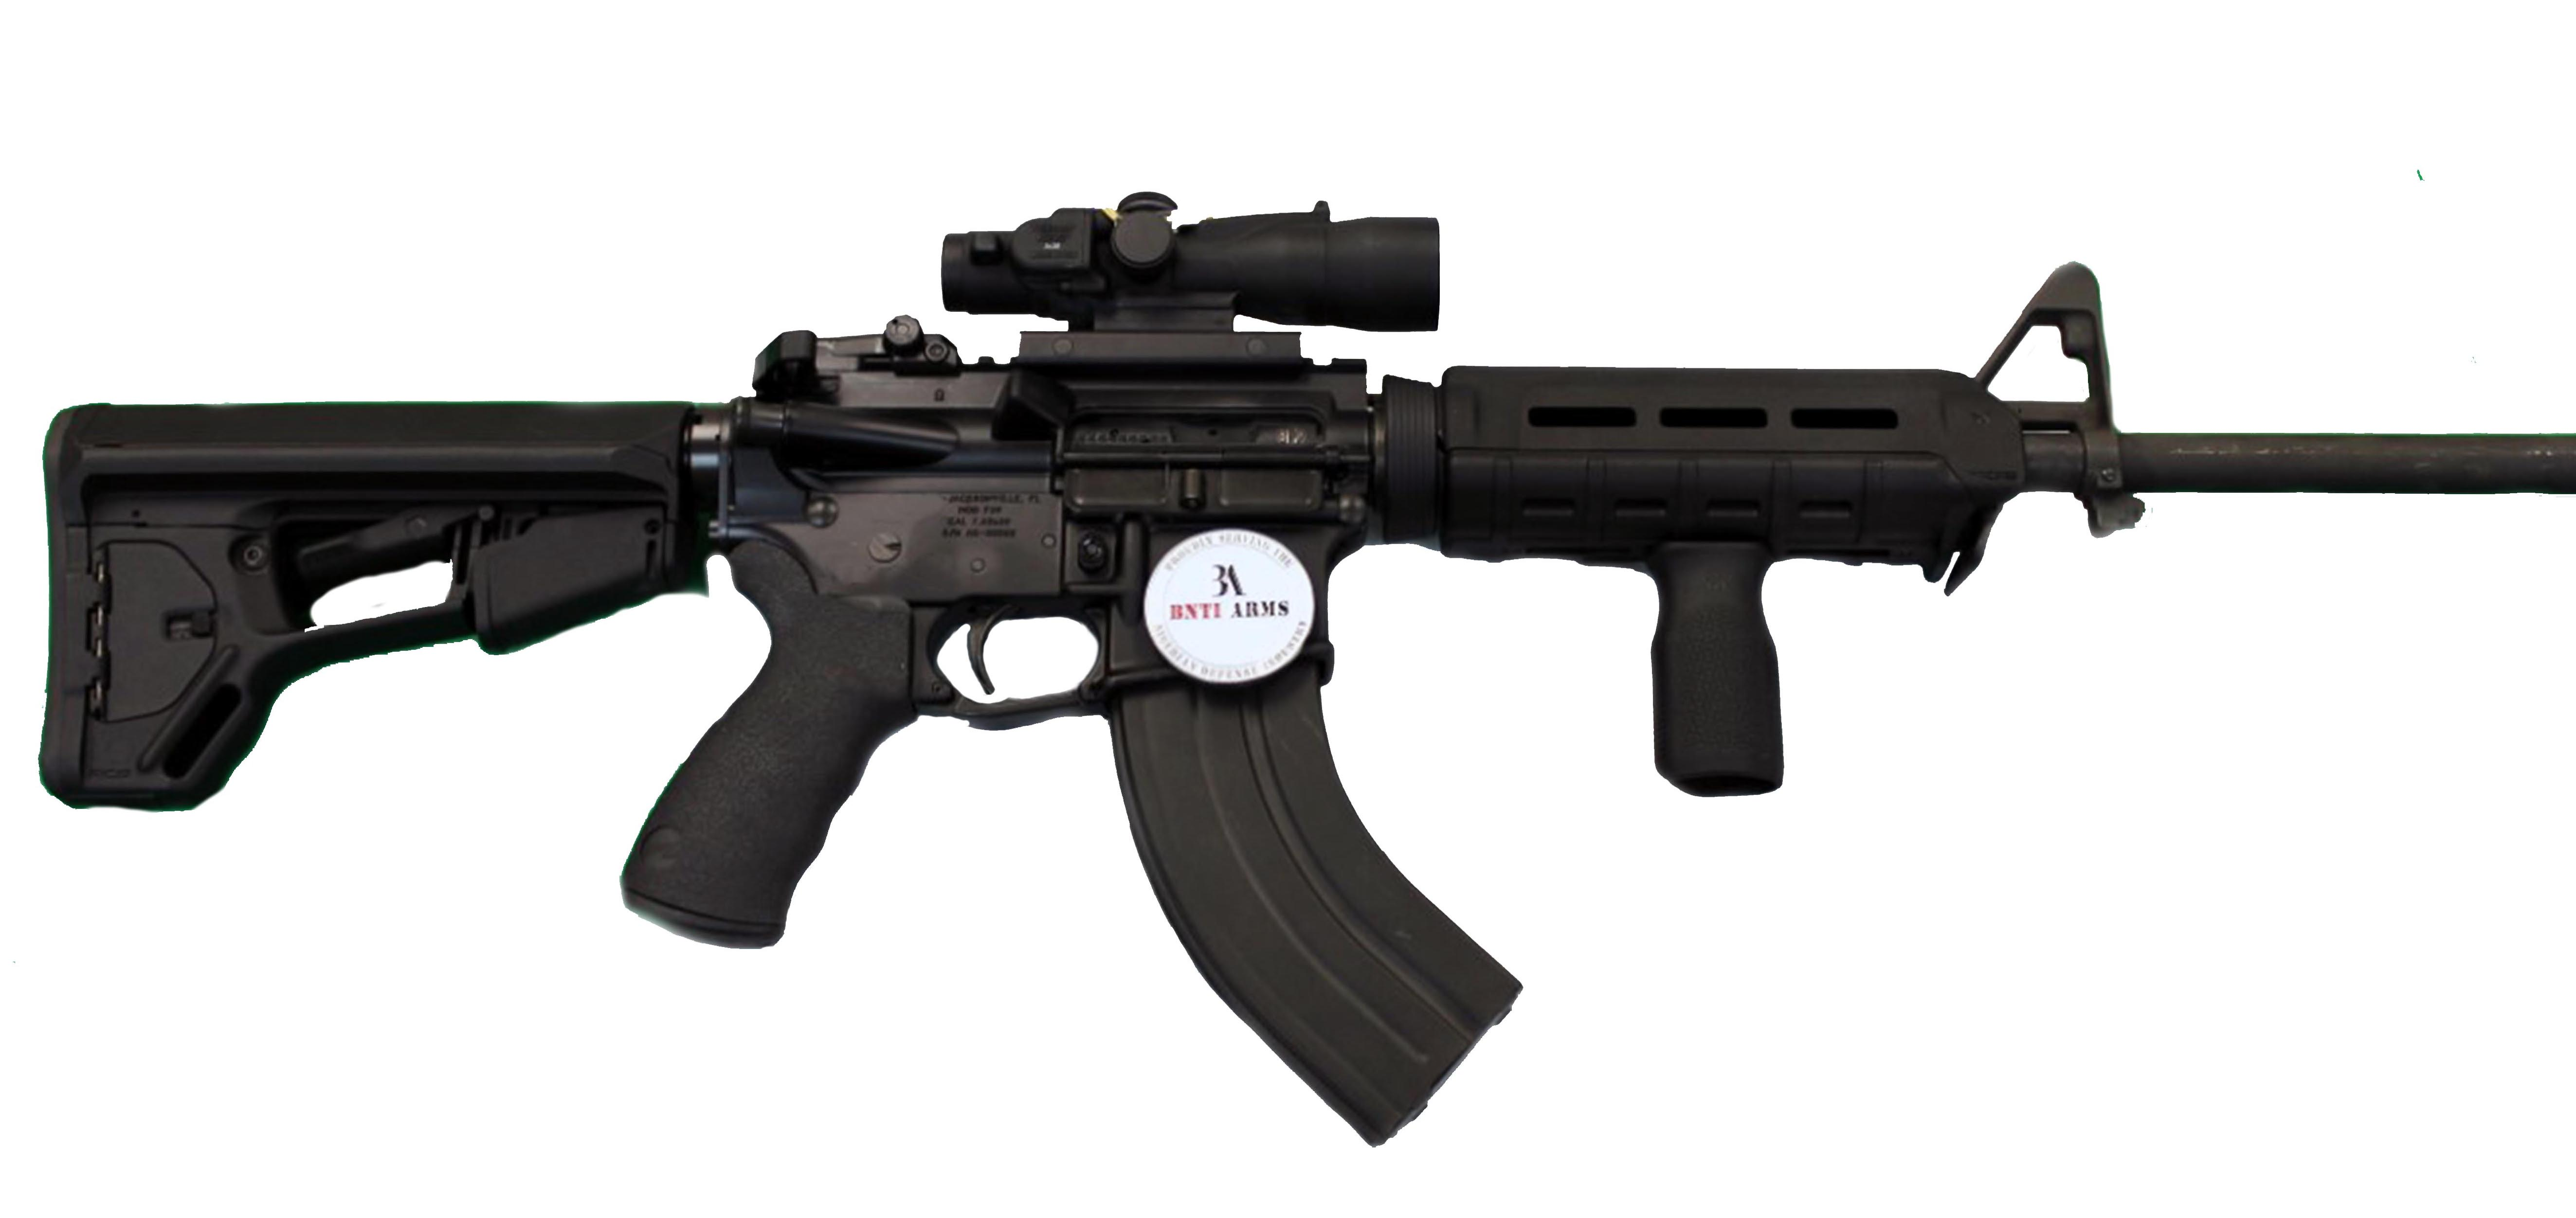 BNTI Arms Warrior Series (AR / AK) 7.62 x 39mm Now Available